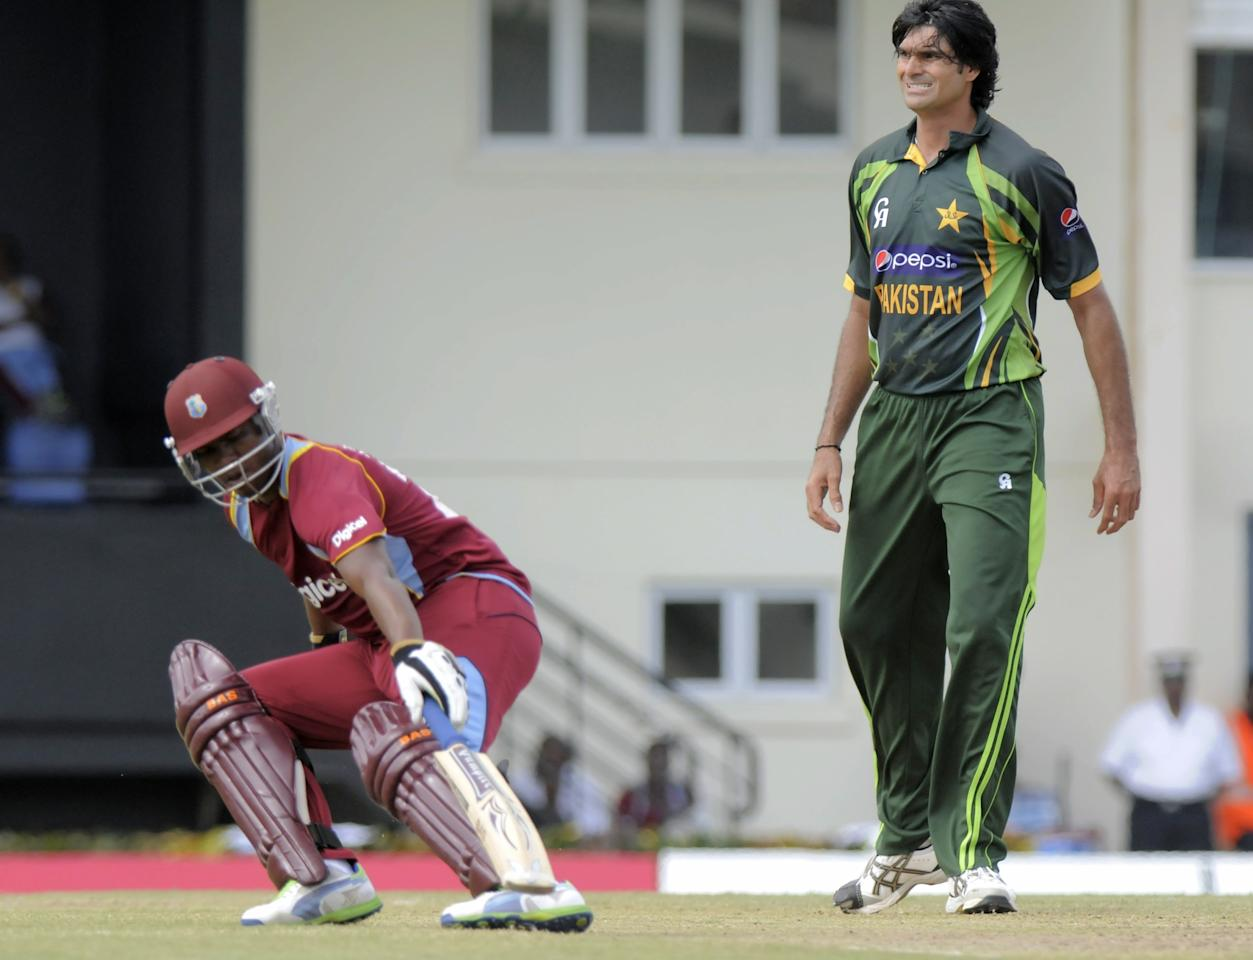 West Indies opening batsman Johnson Charles (L) gets 4 runs off Pakistan bowler Mohammad Irfan (R) on July 24, 2013 at the start of the 5th and final ODI West Indies v Pakistan at Beausejour Cricket Ground, in Gros Islet, St. Lucia. AFP PHOTO/RANDY BROOKS        (Photo credit should read RANDY BROOKS/AFP/Getty Images)